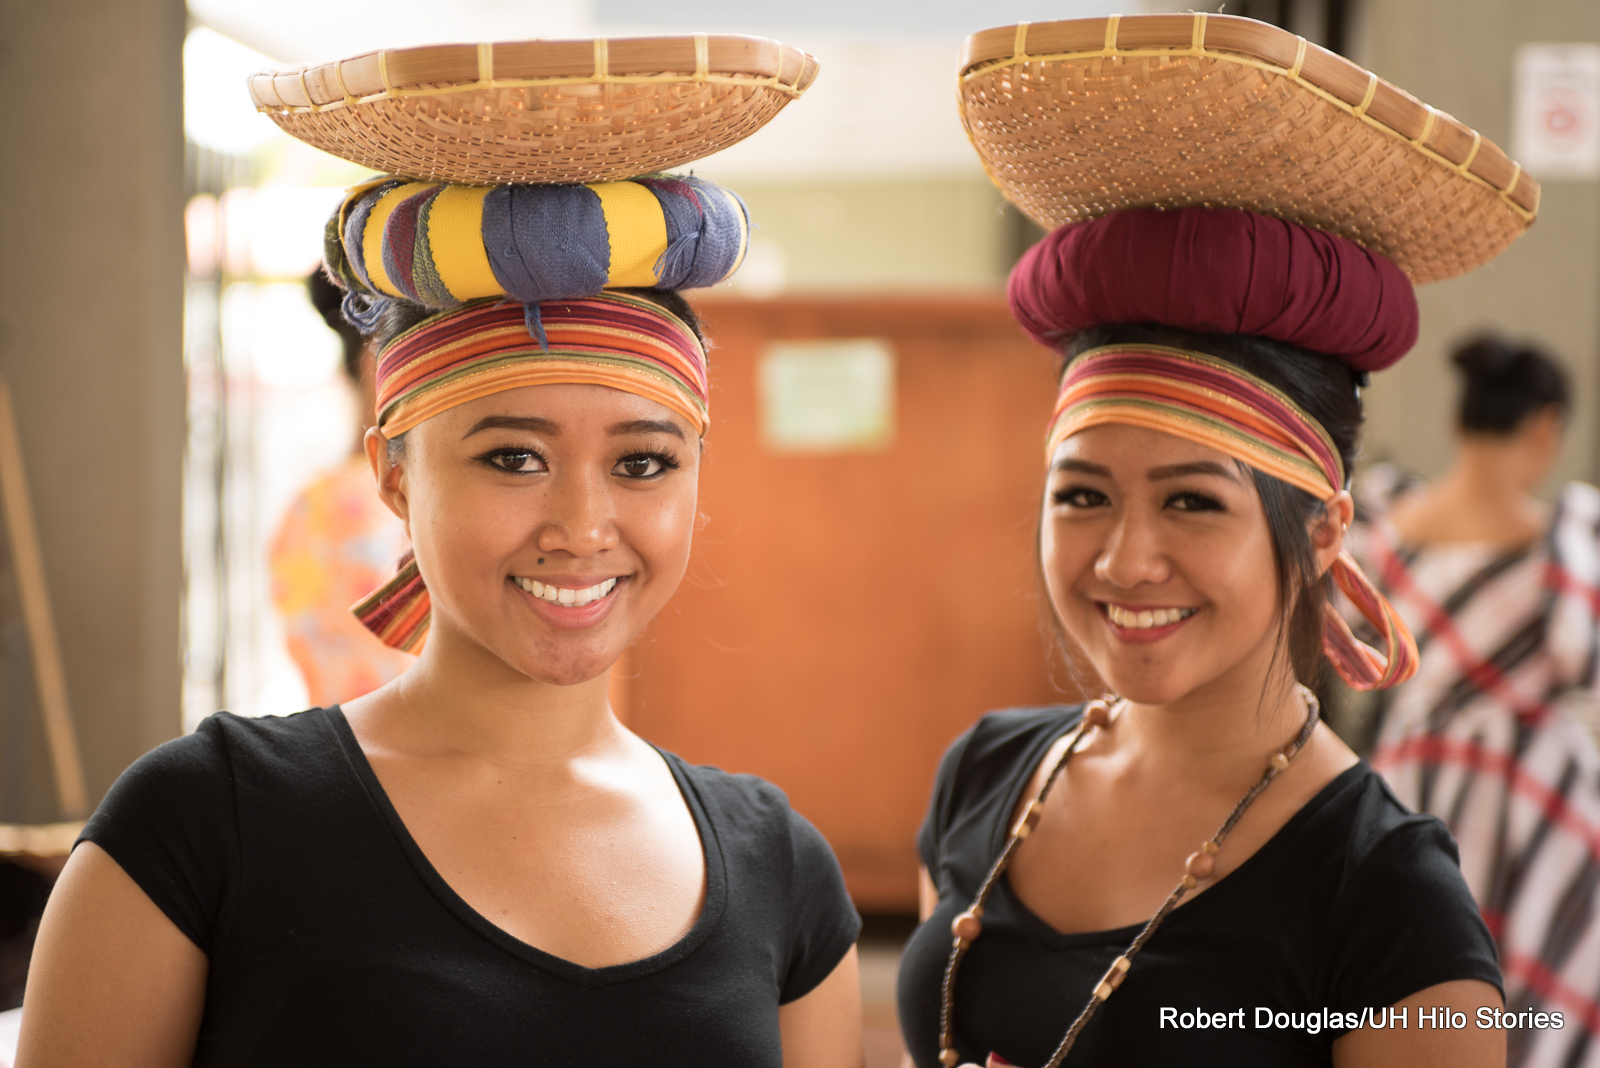 photo essay uh hilo s barrio fiesta celebrates filipino  photo essay uh hilo s 2015 barrio fiesta celebrates filipino culture song and dance